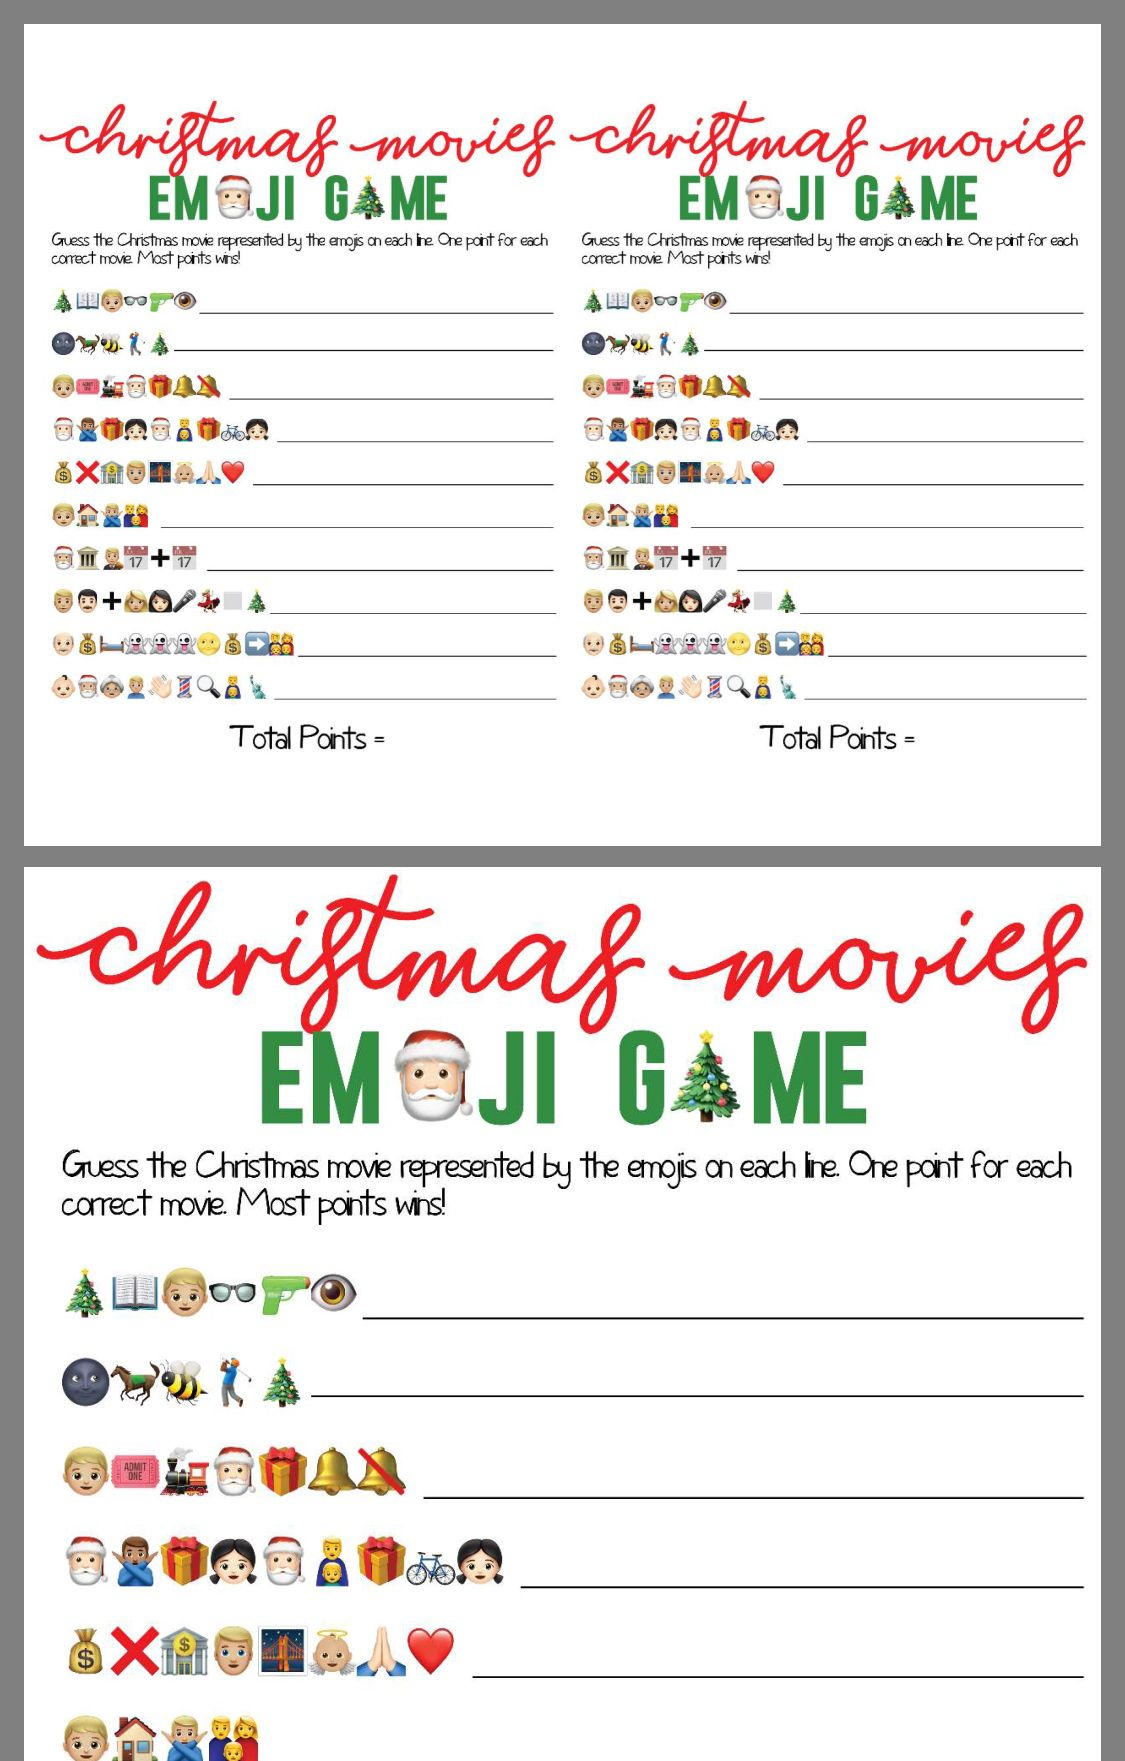 Pin By Kasandra Ackerson On Christmas Youth Emoji Games Christmas Youth Christmas Party Games